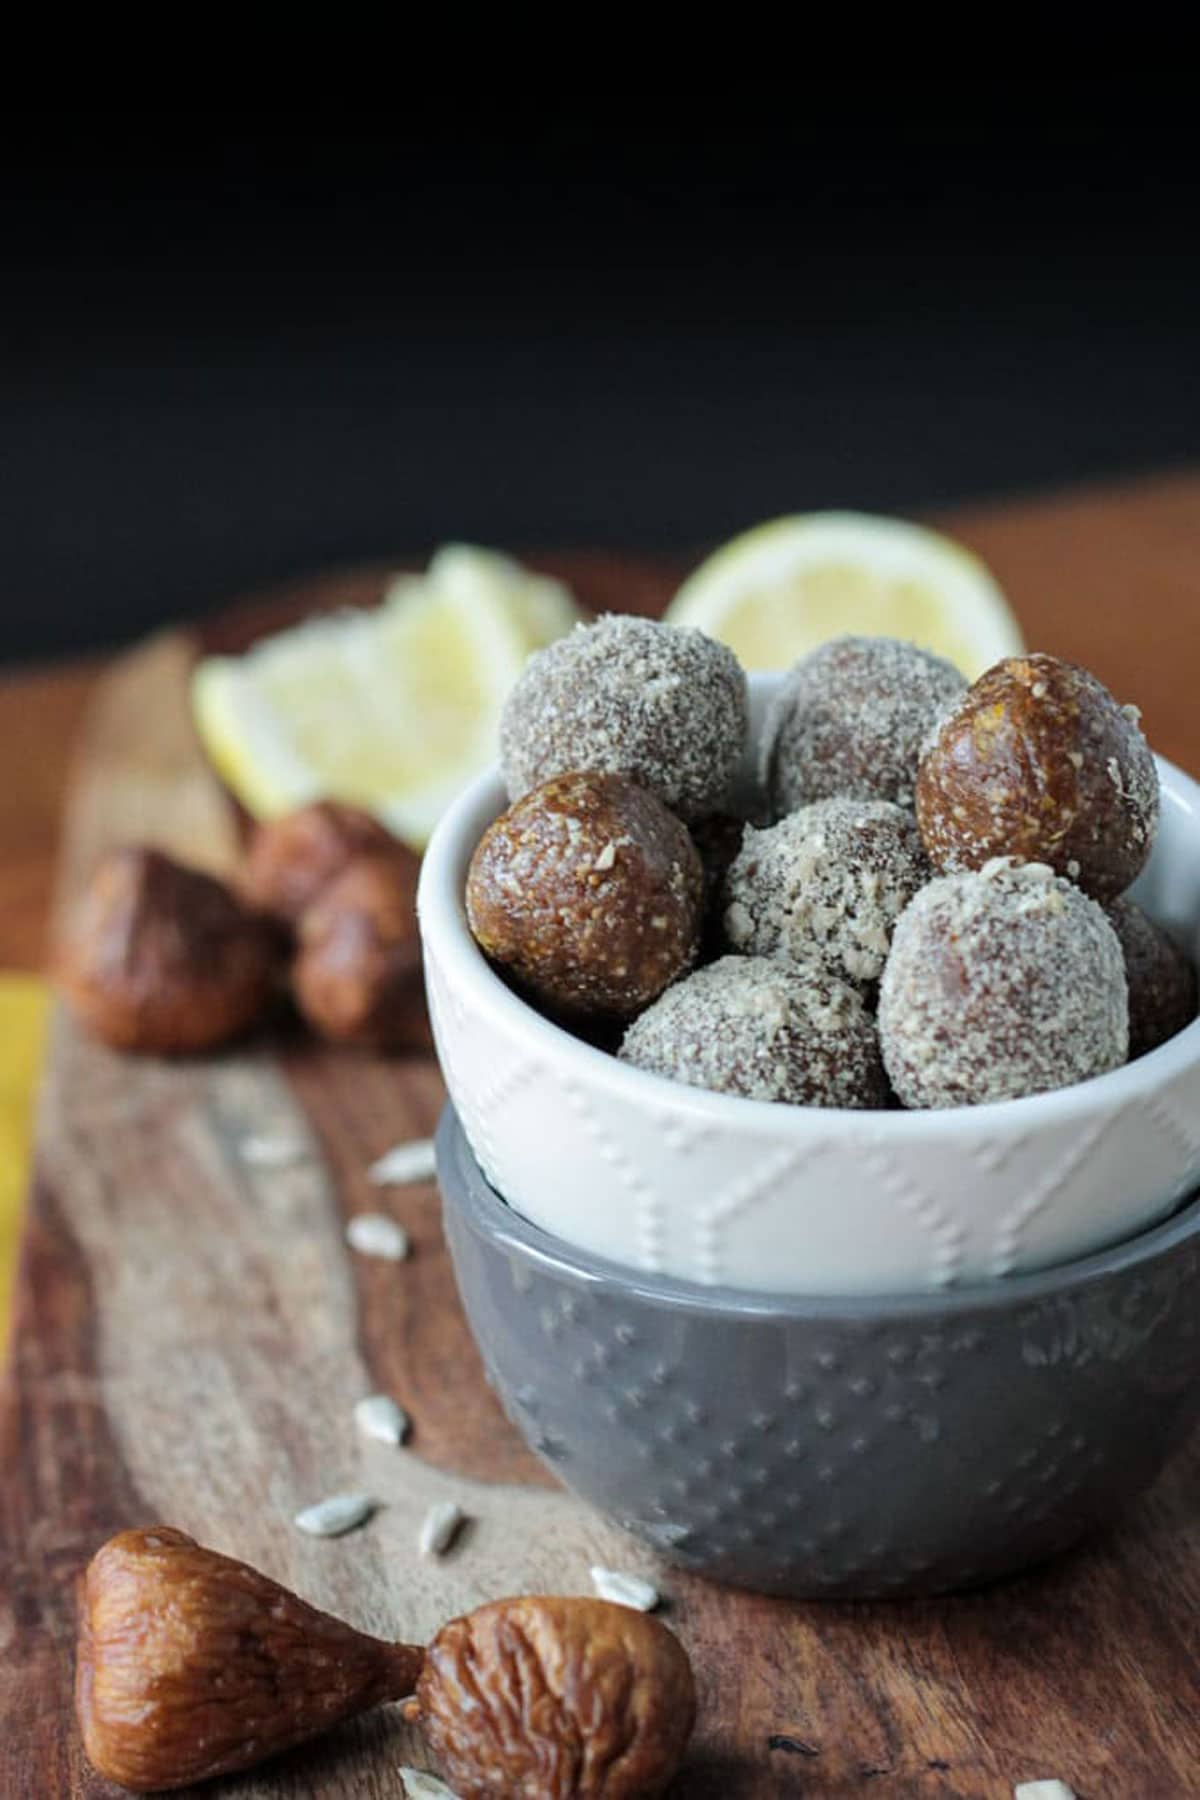 A pile of sunflower fig balls in a white bowl.